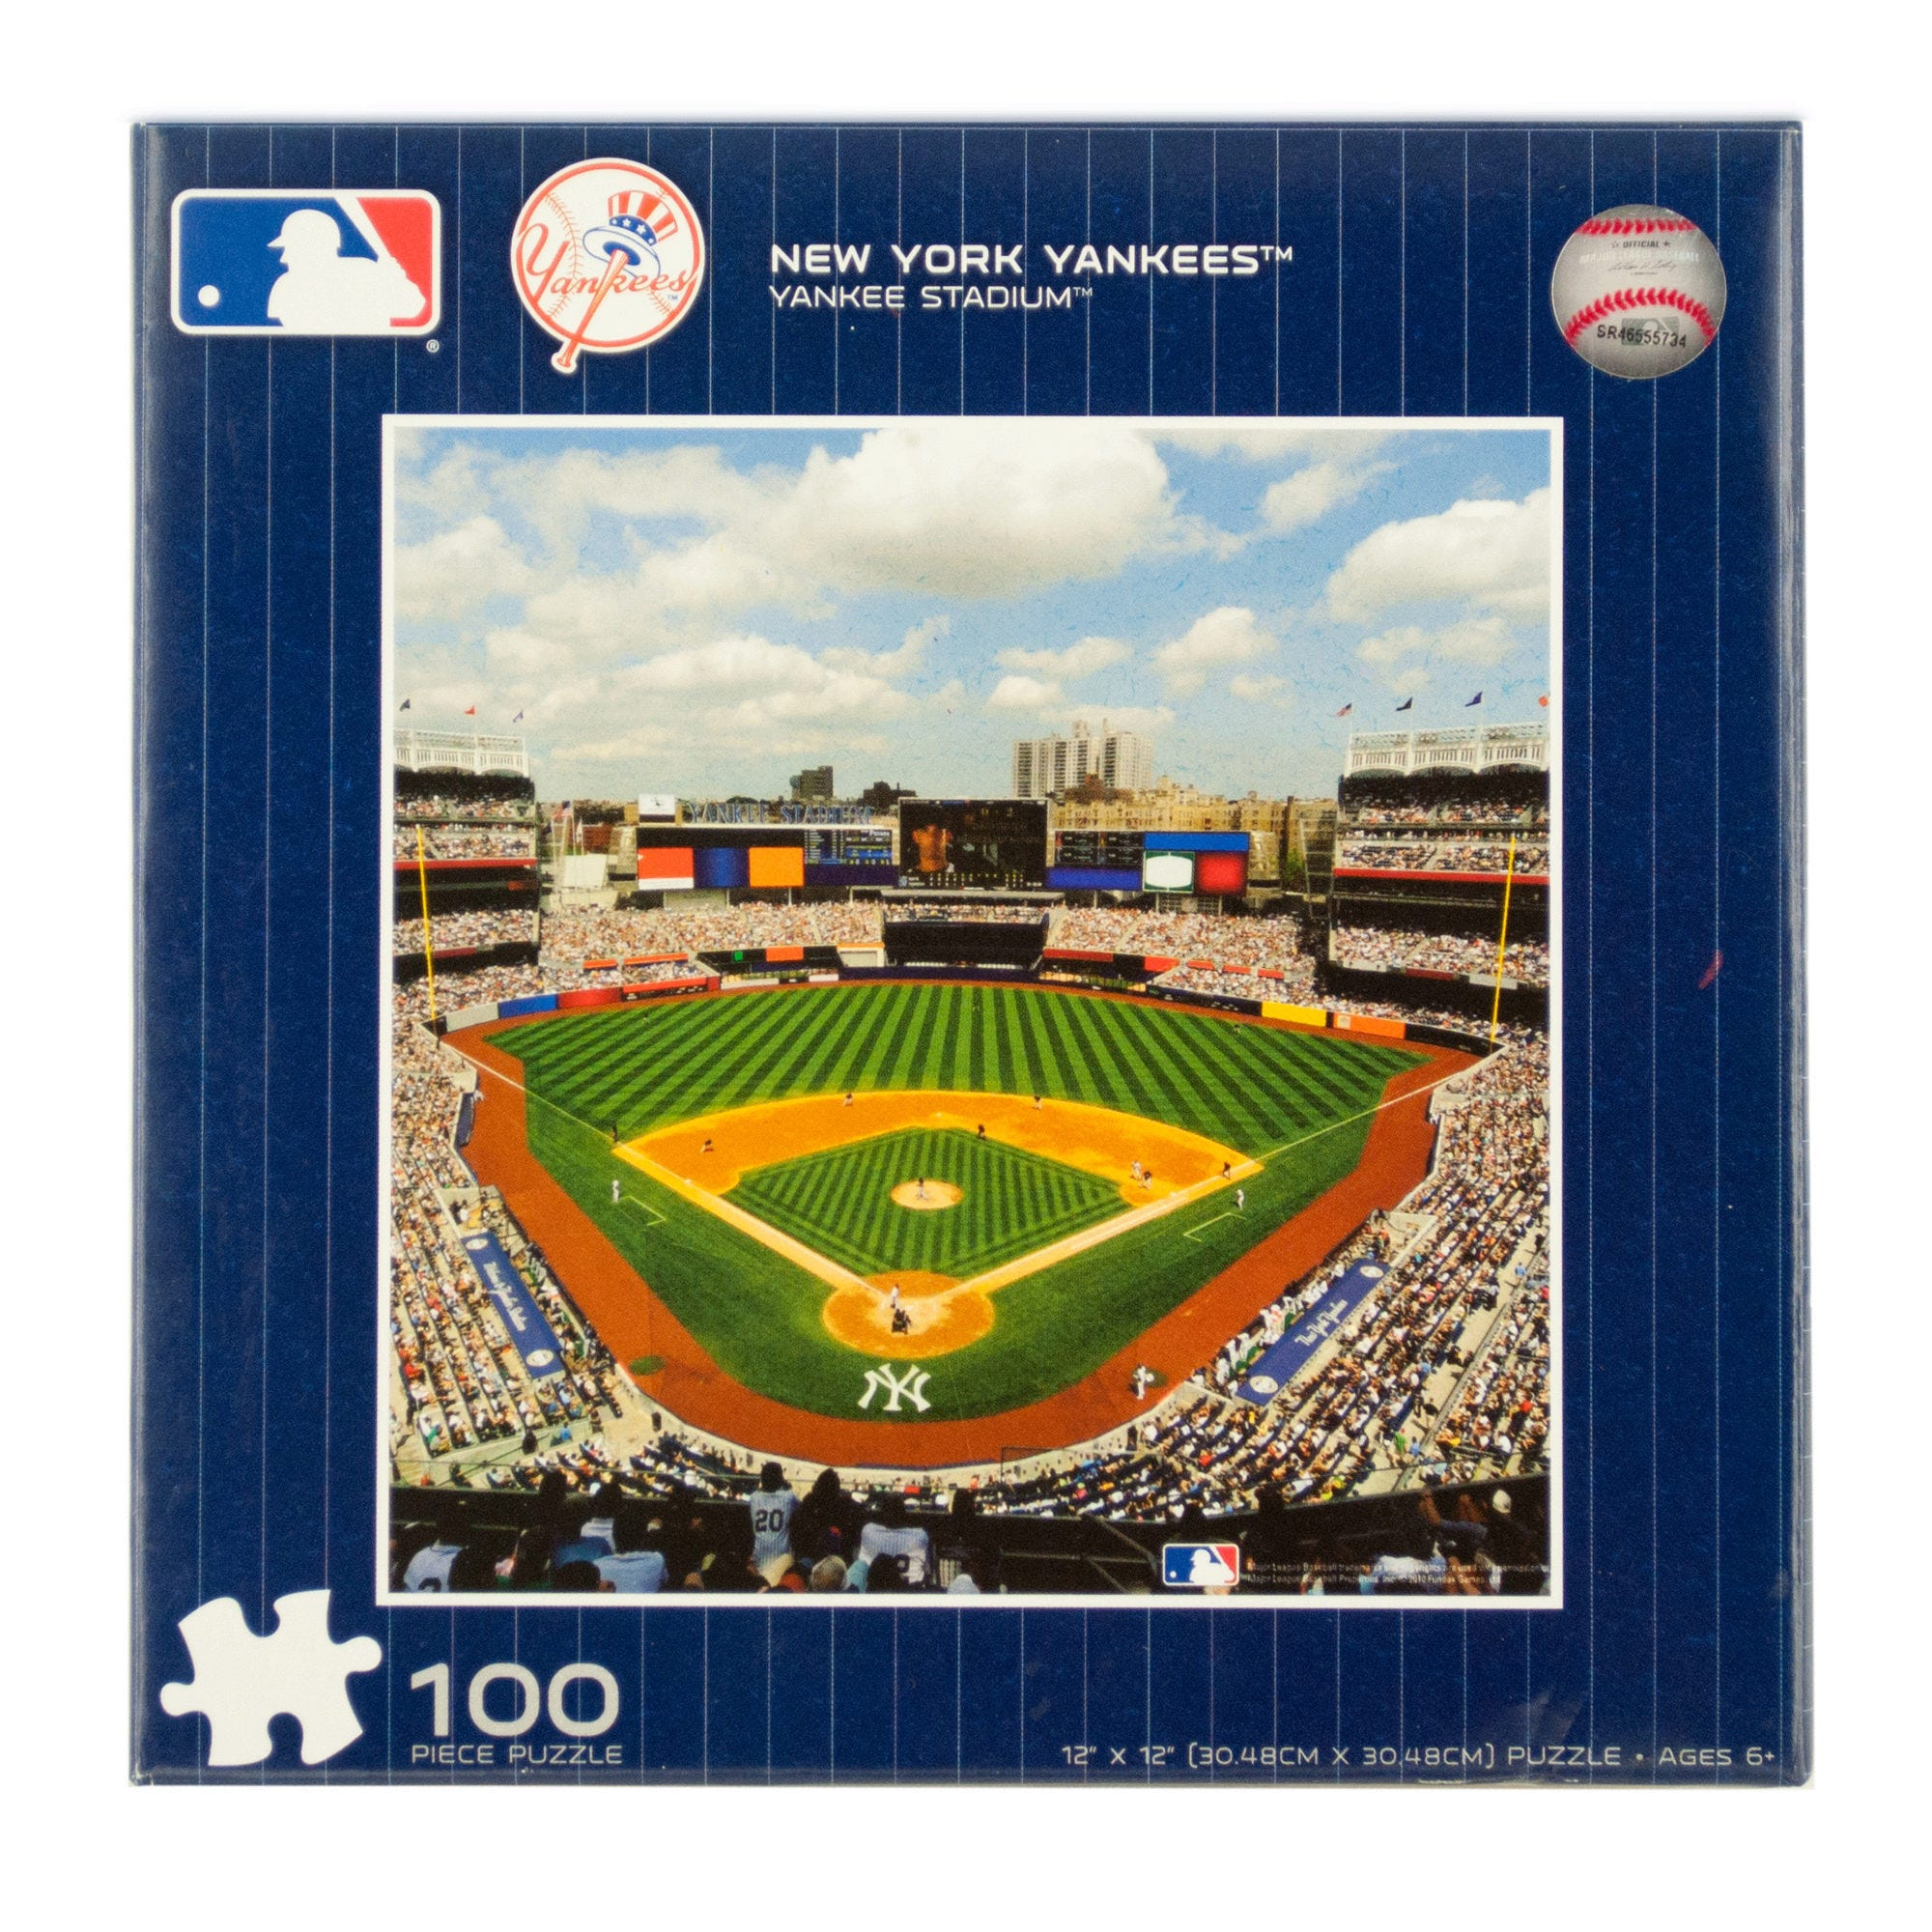 MLB Licensed New York YANKEES Puzzle- Qty 24